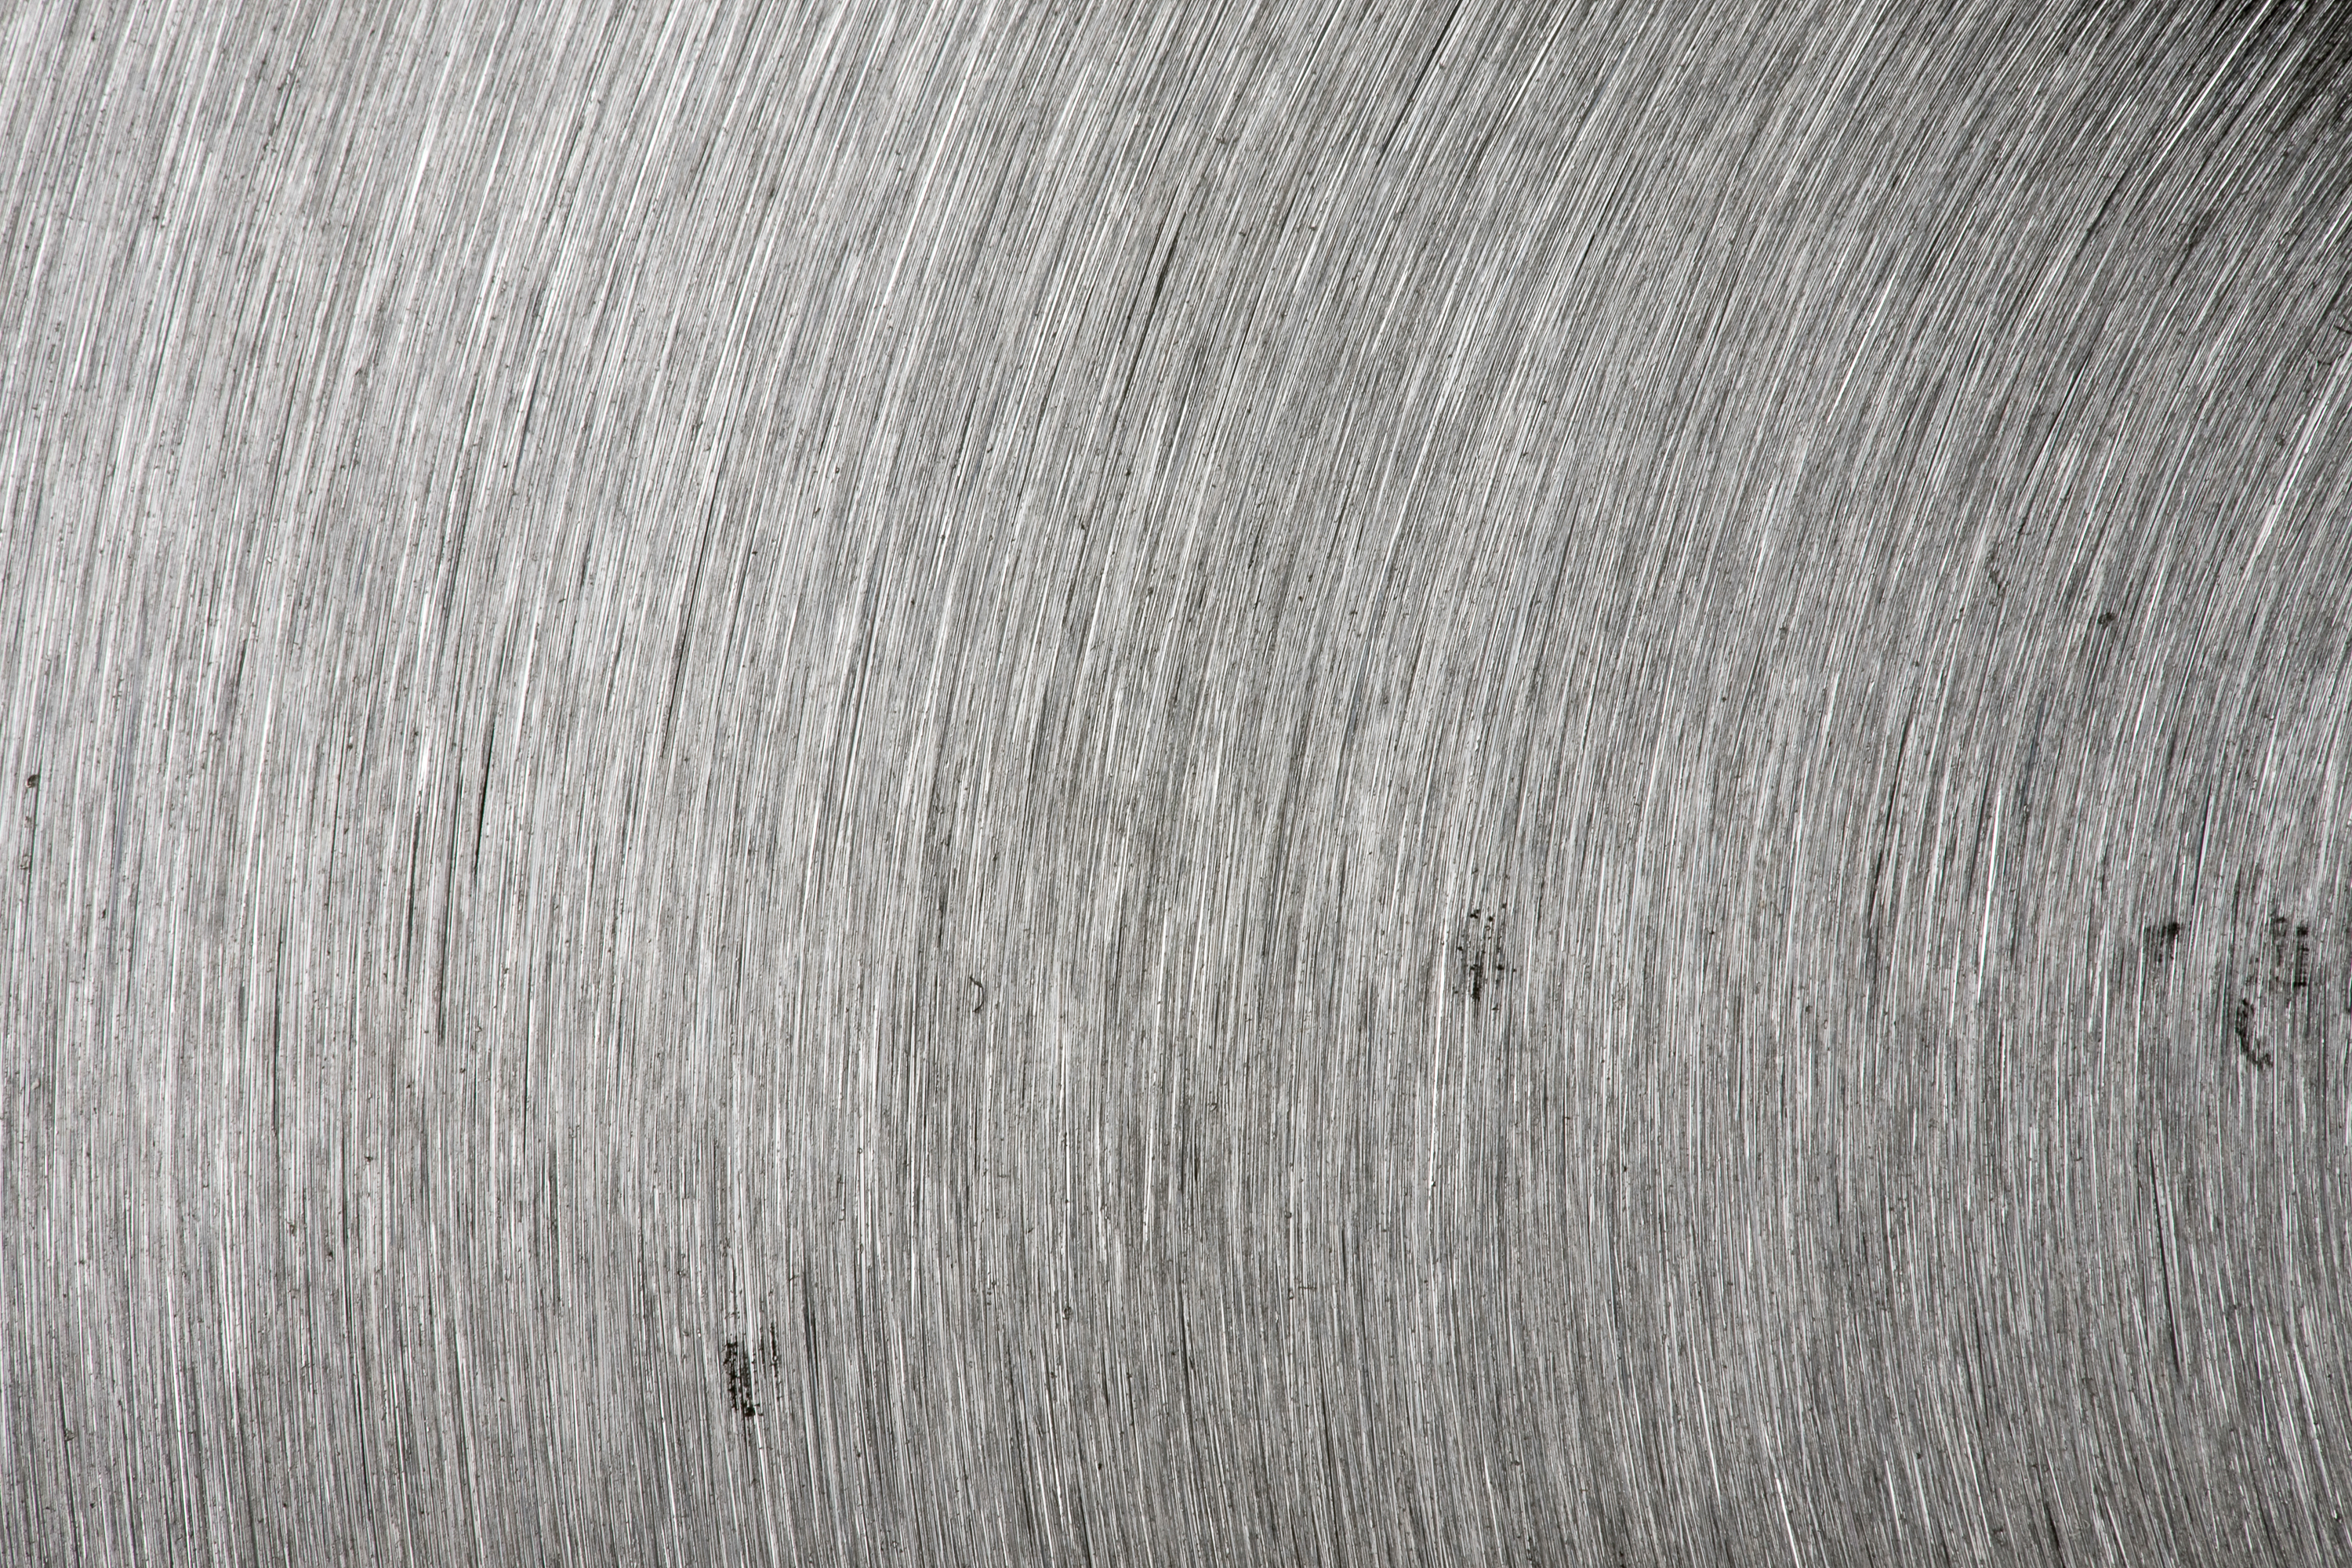 Brushed Metal Texture, Polished, Plate, Radial, Reflection, HQ Photo